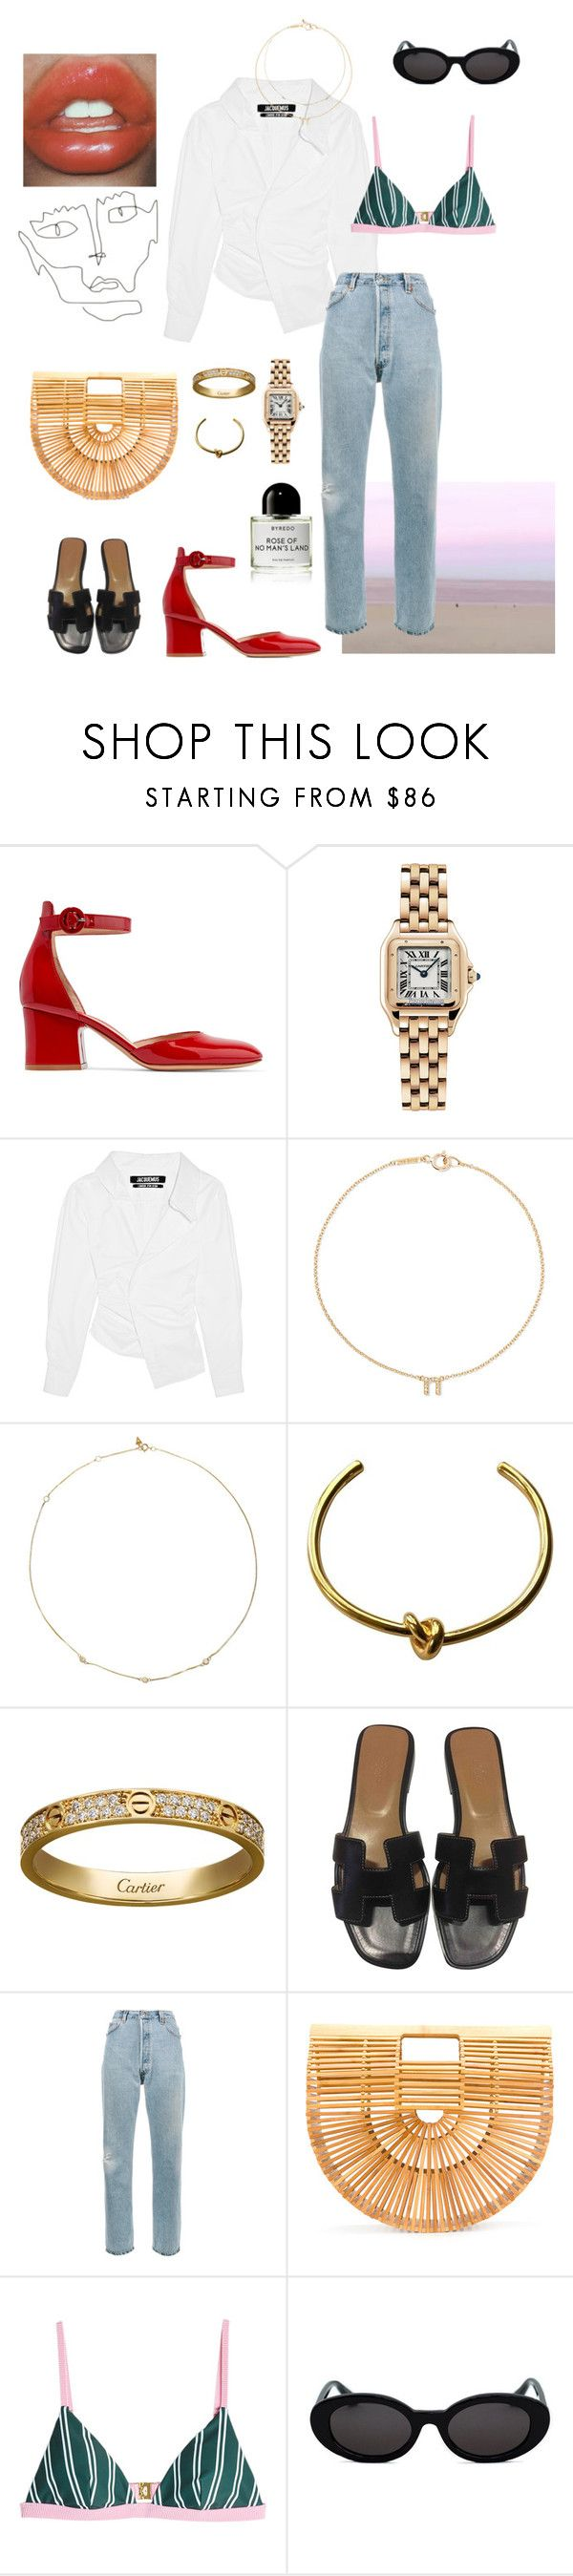 """Blue jeans, White shirt..."" by vera-e-ekdahl on Polyvore featuring Gianvito Rossi, Cartier, Jacquemus, Jennifer Meyer Jewelry, Loren Stewart, CÉLINE, Hermès, Byredo, RE/DONE and Cult Gaia"